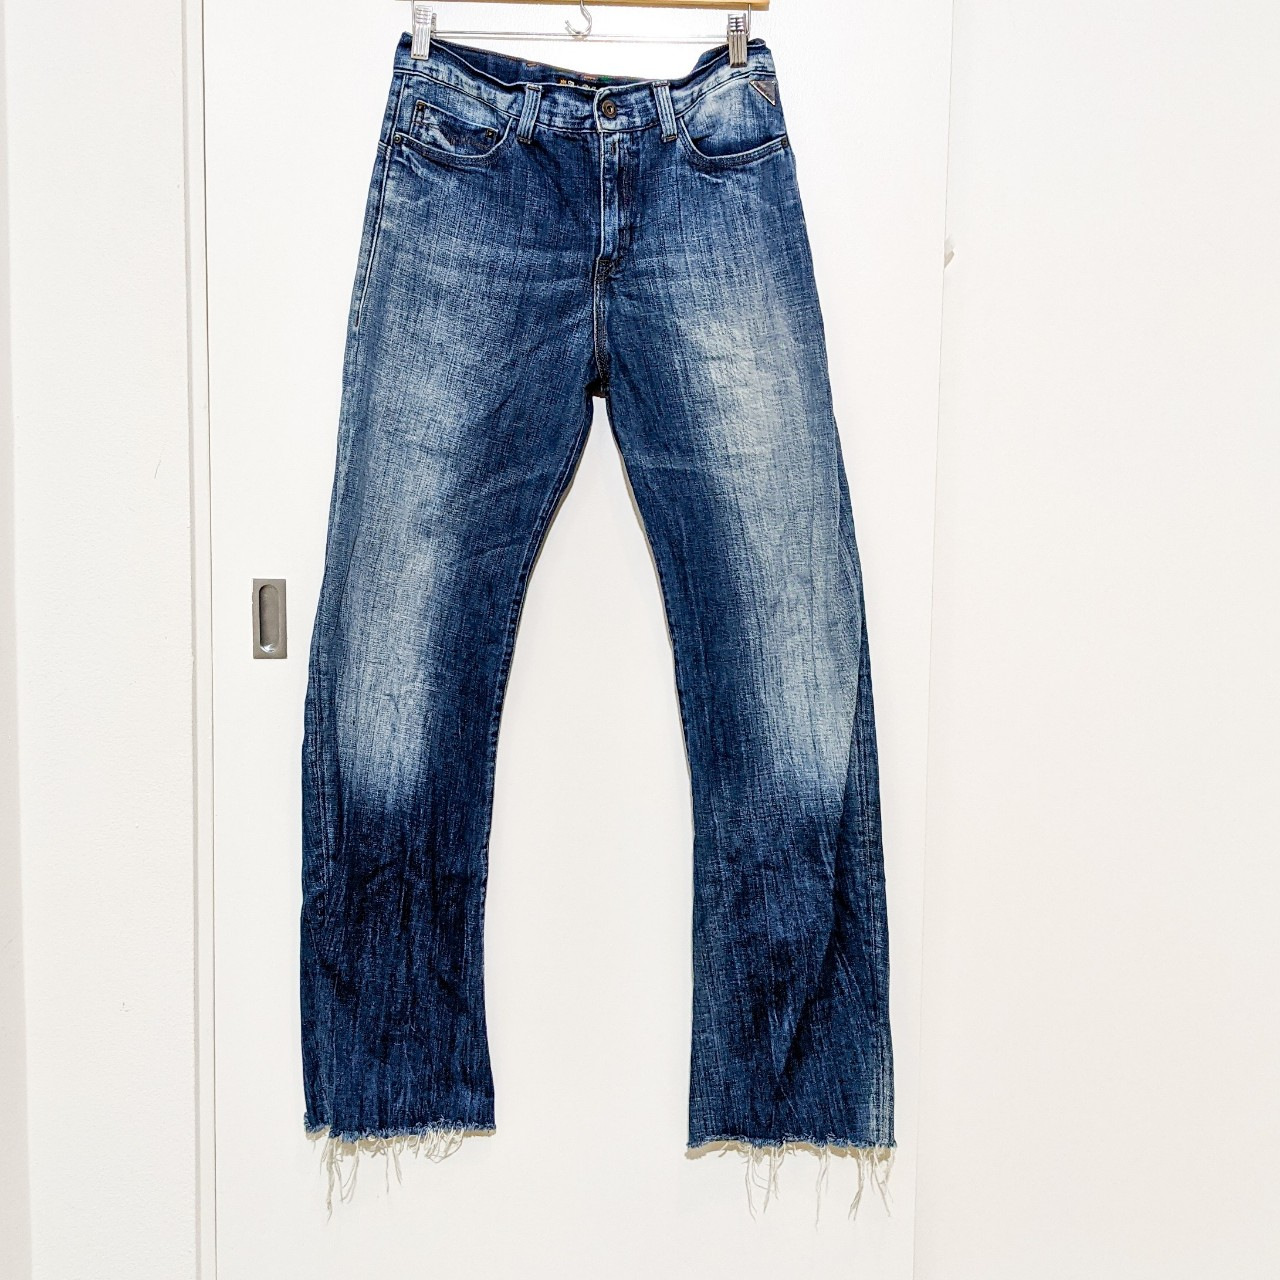 Product Image 1 - VINTAGE Replay Blue jeans, RESSY